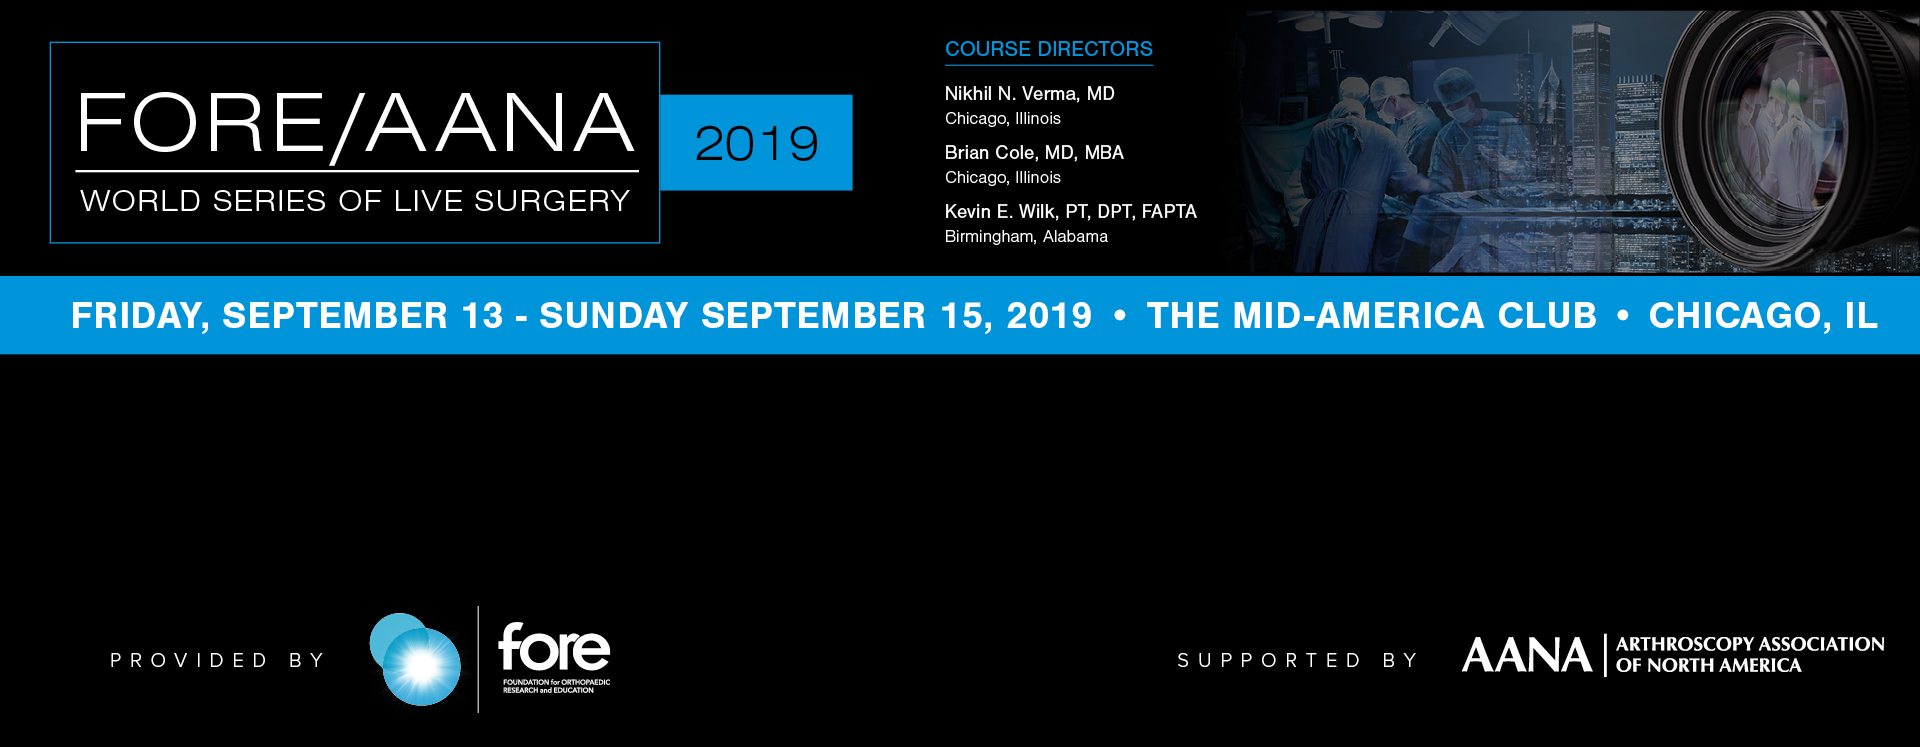 AANA | Arthroscopy Association of North America